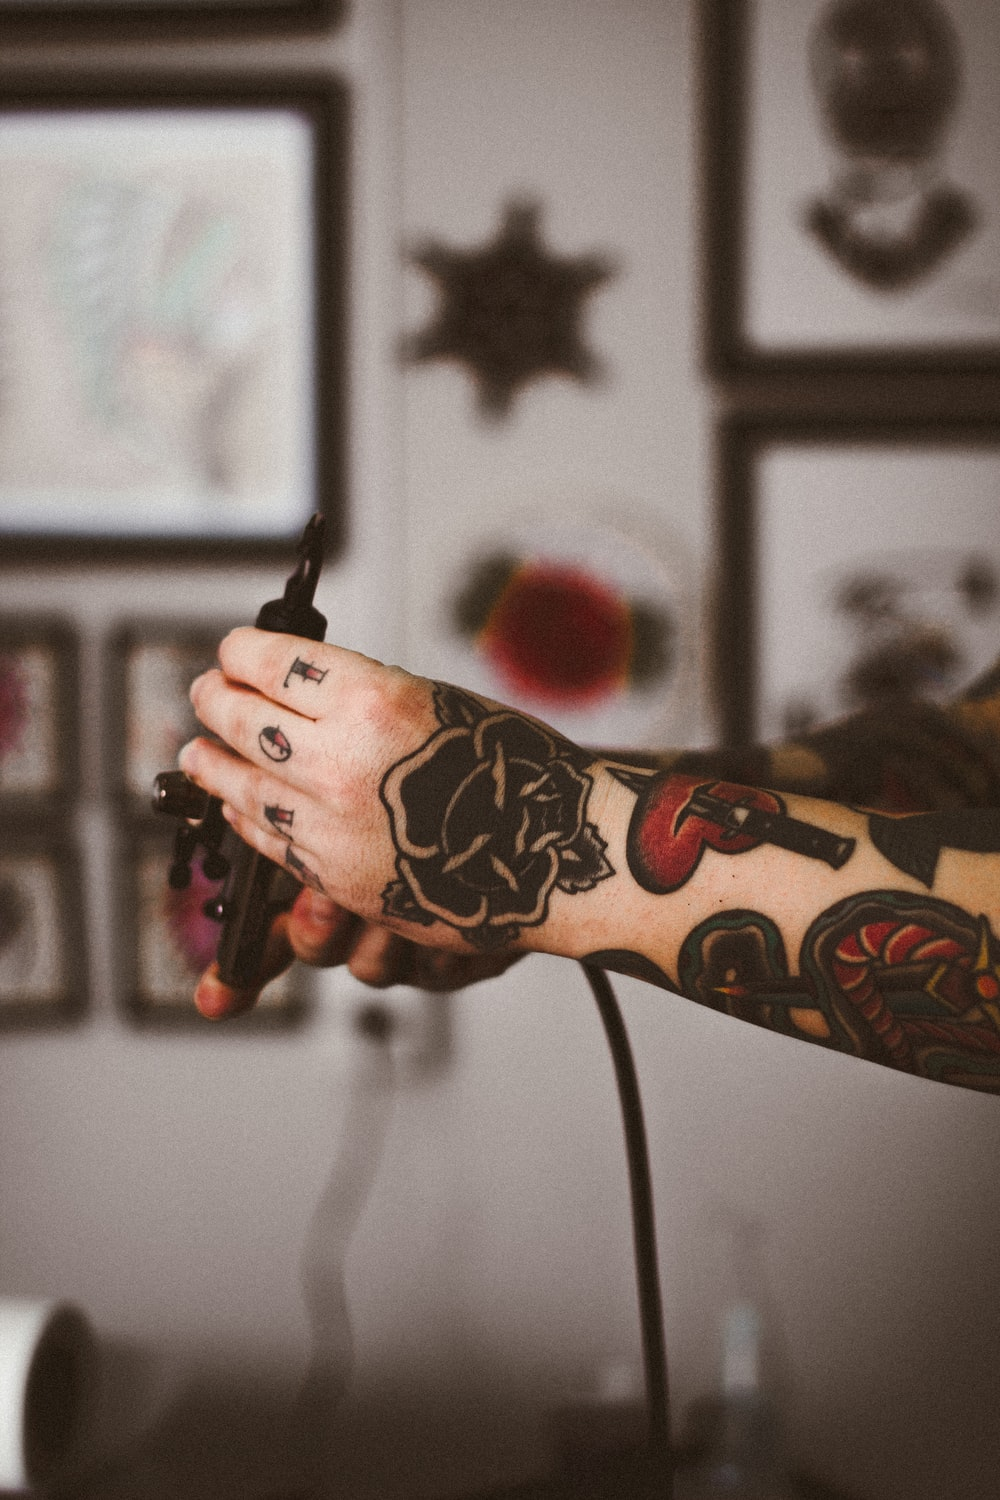 Starter Tattoo Kits - Don't Risk Your Tattoo Dreams With These Starter Tattoo Kits